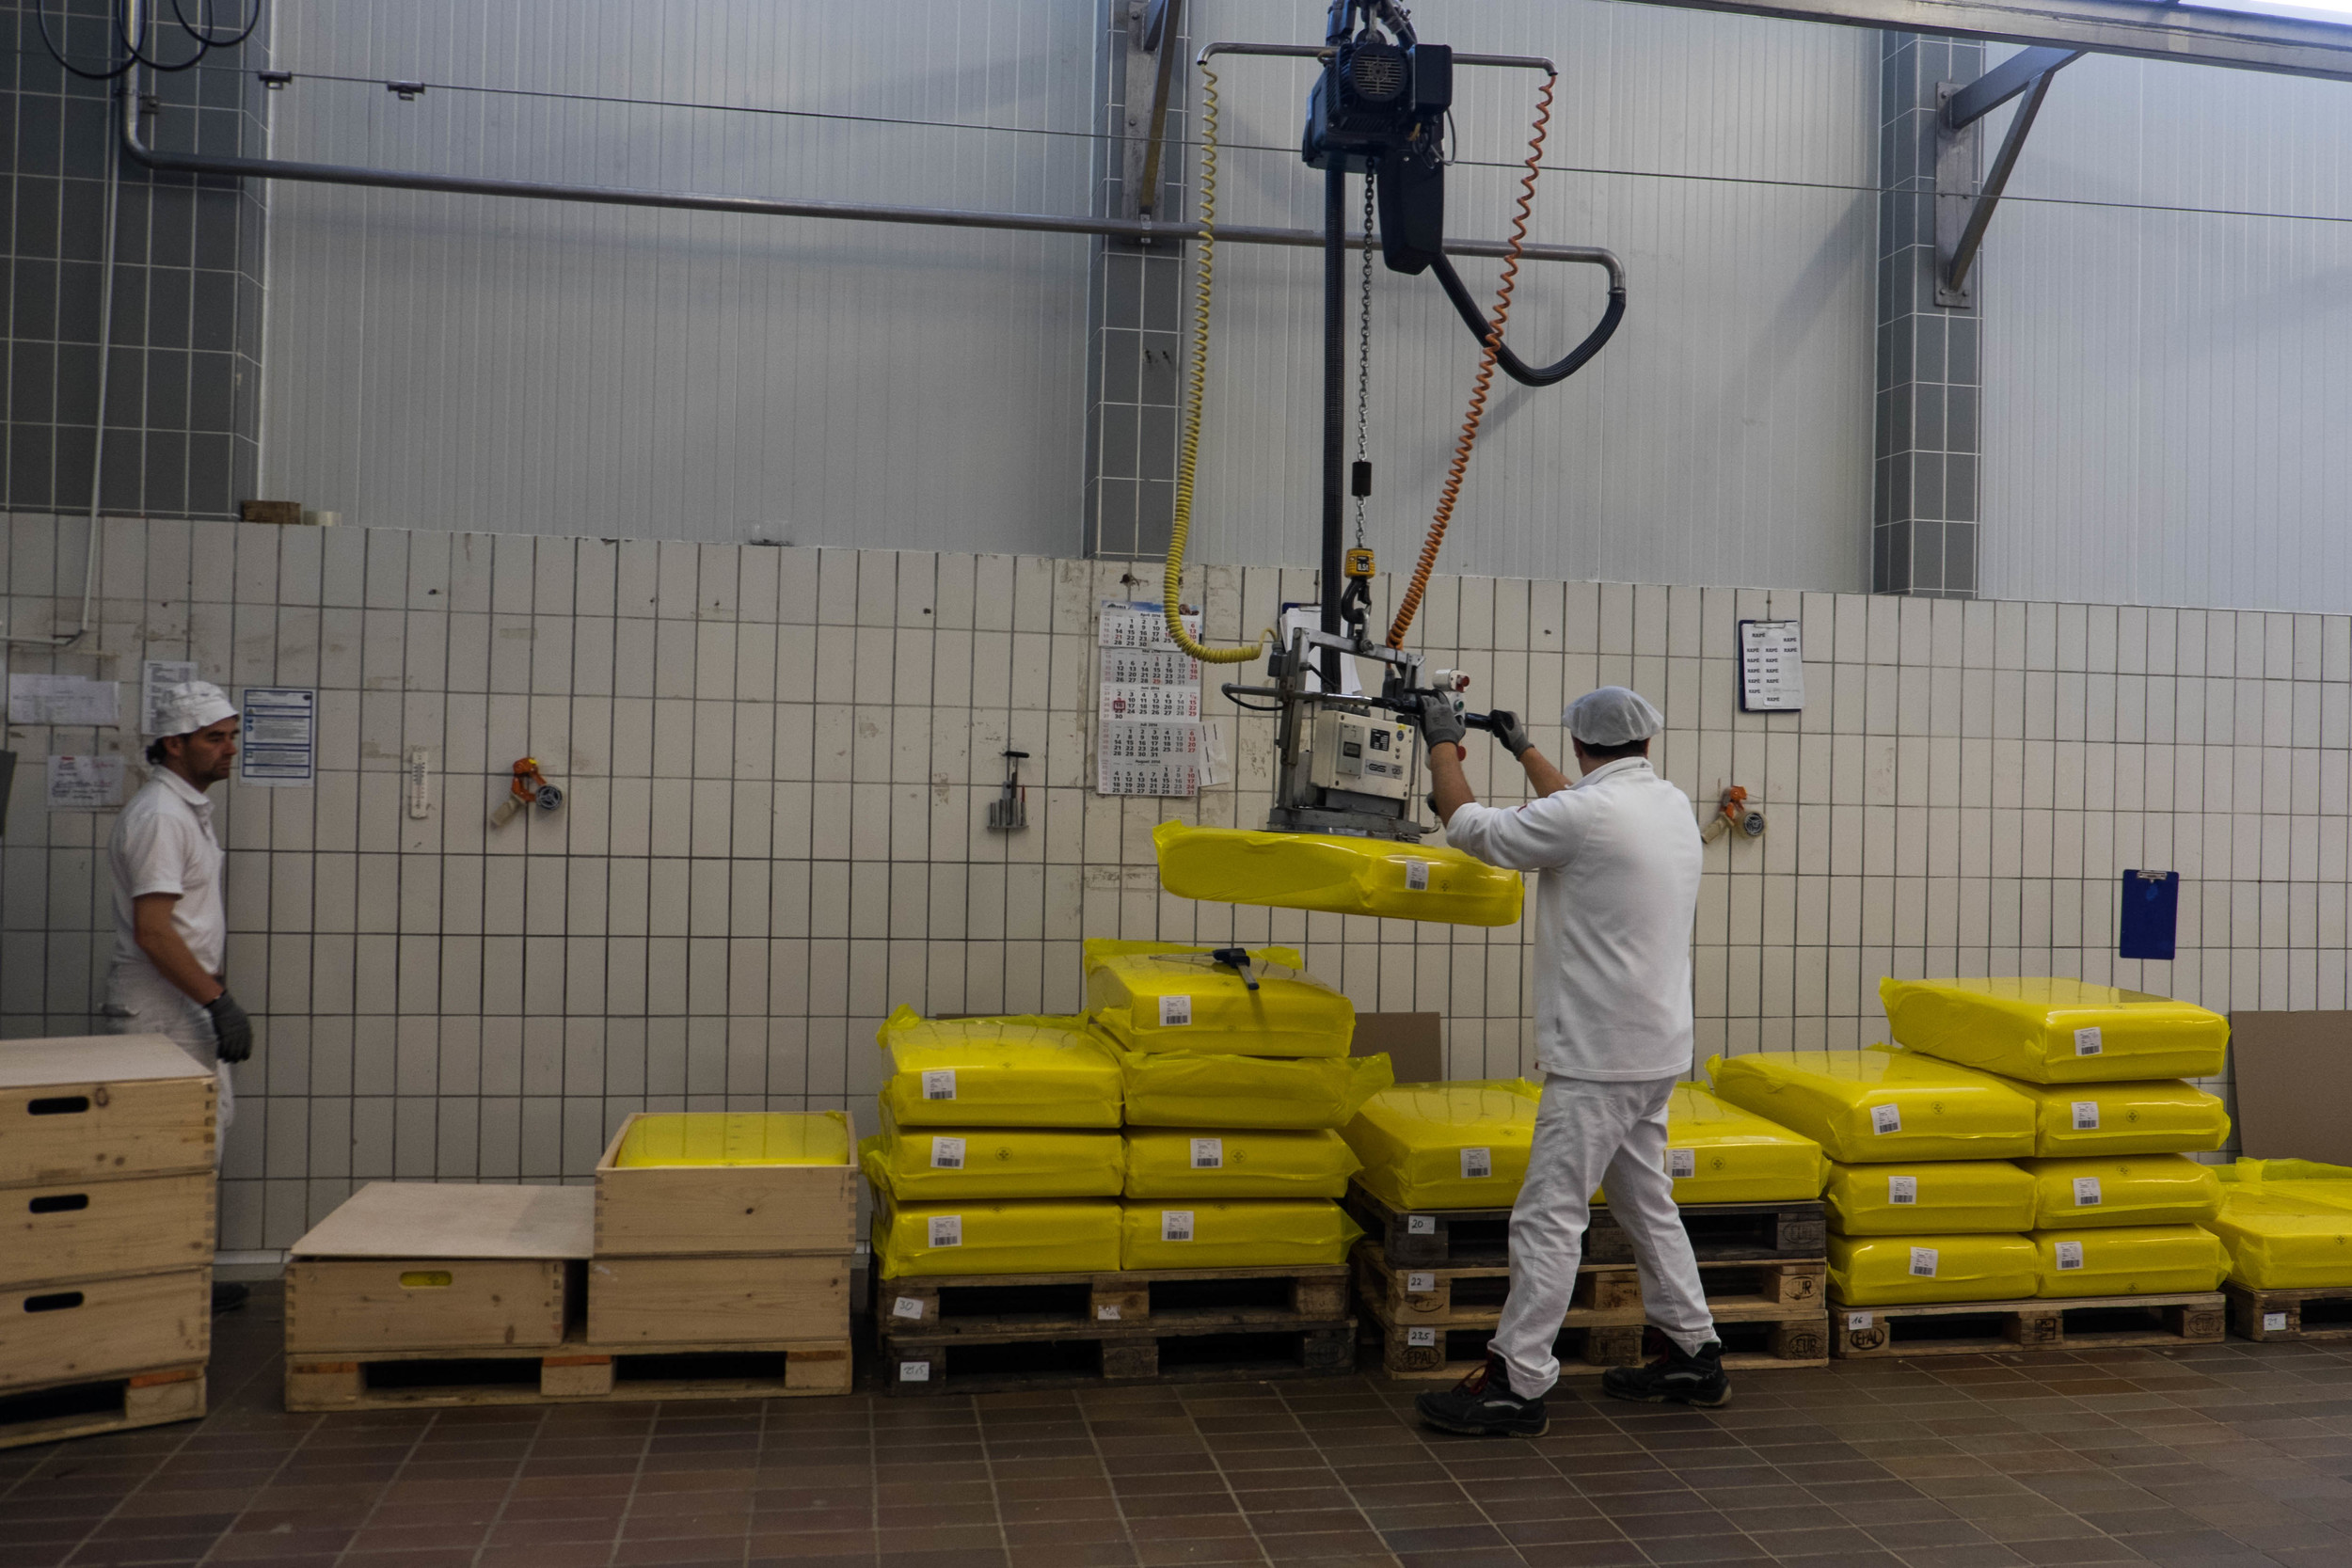 Moving blocks of emmentaler cheese.